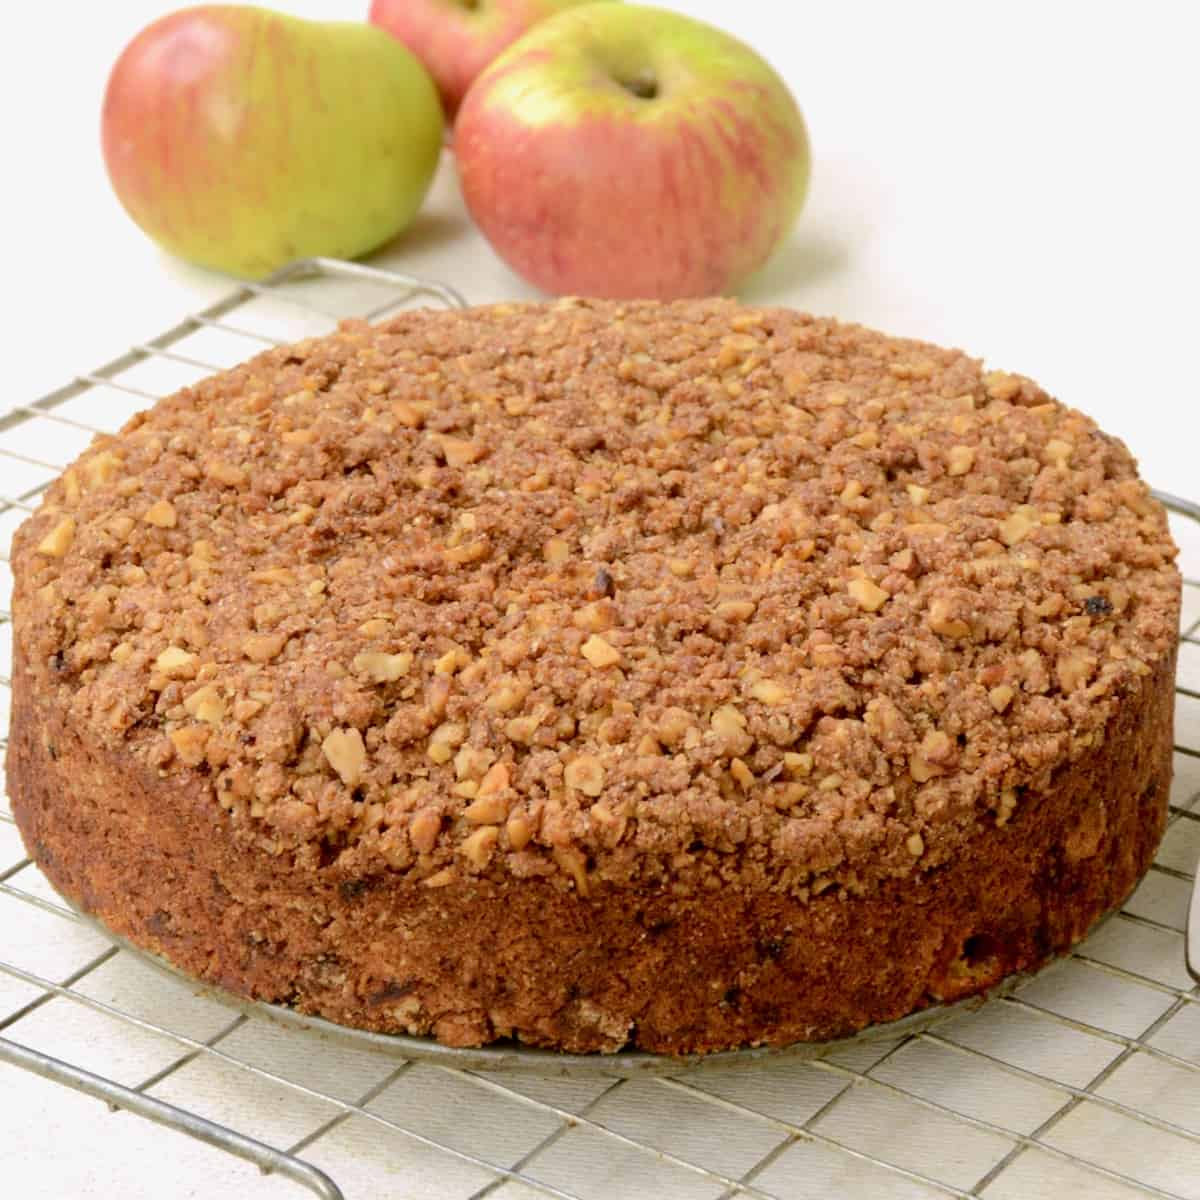 The vegan apple cake on a wire cooling rack, three apples in the background.